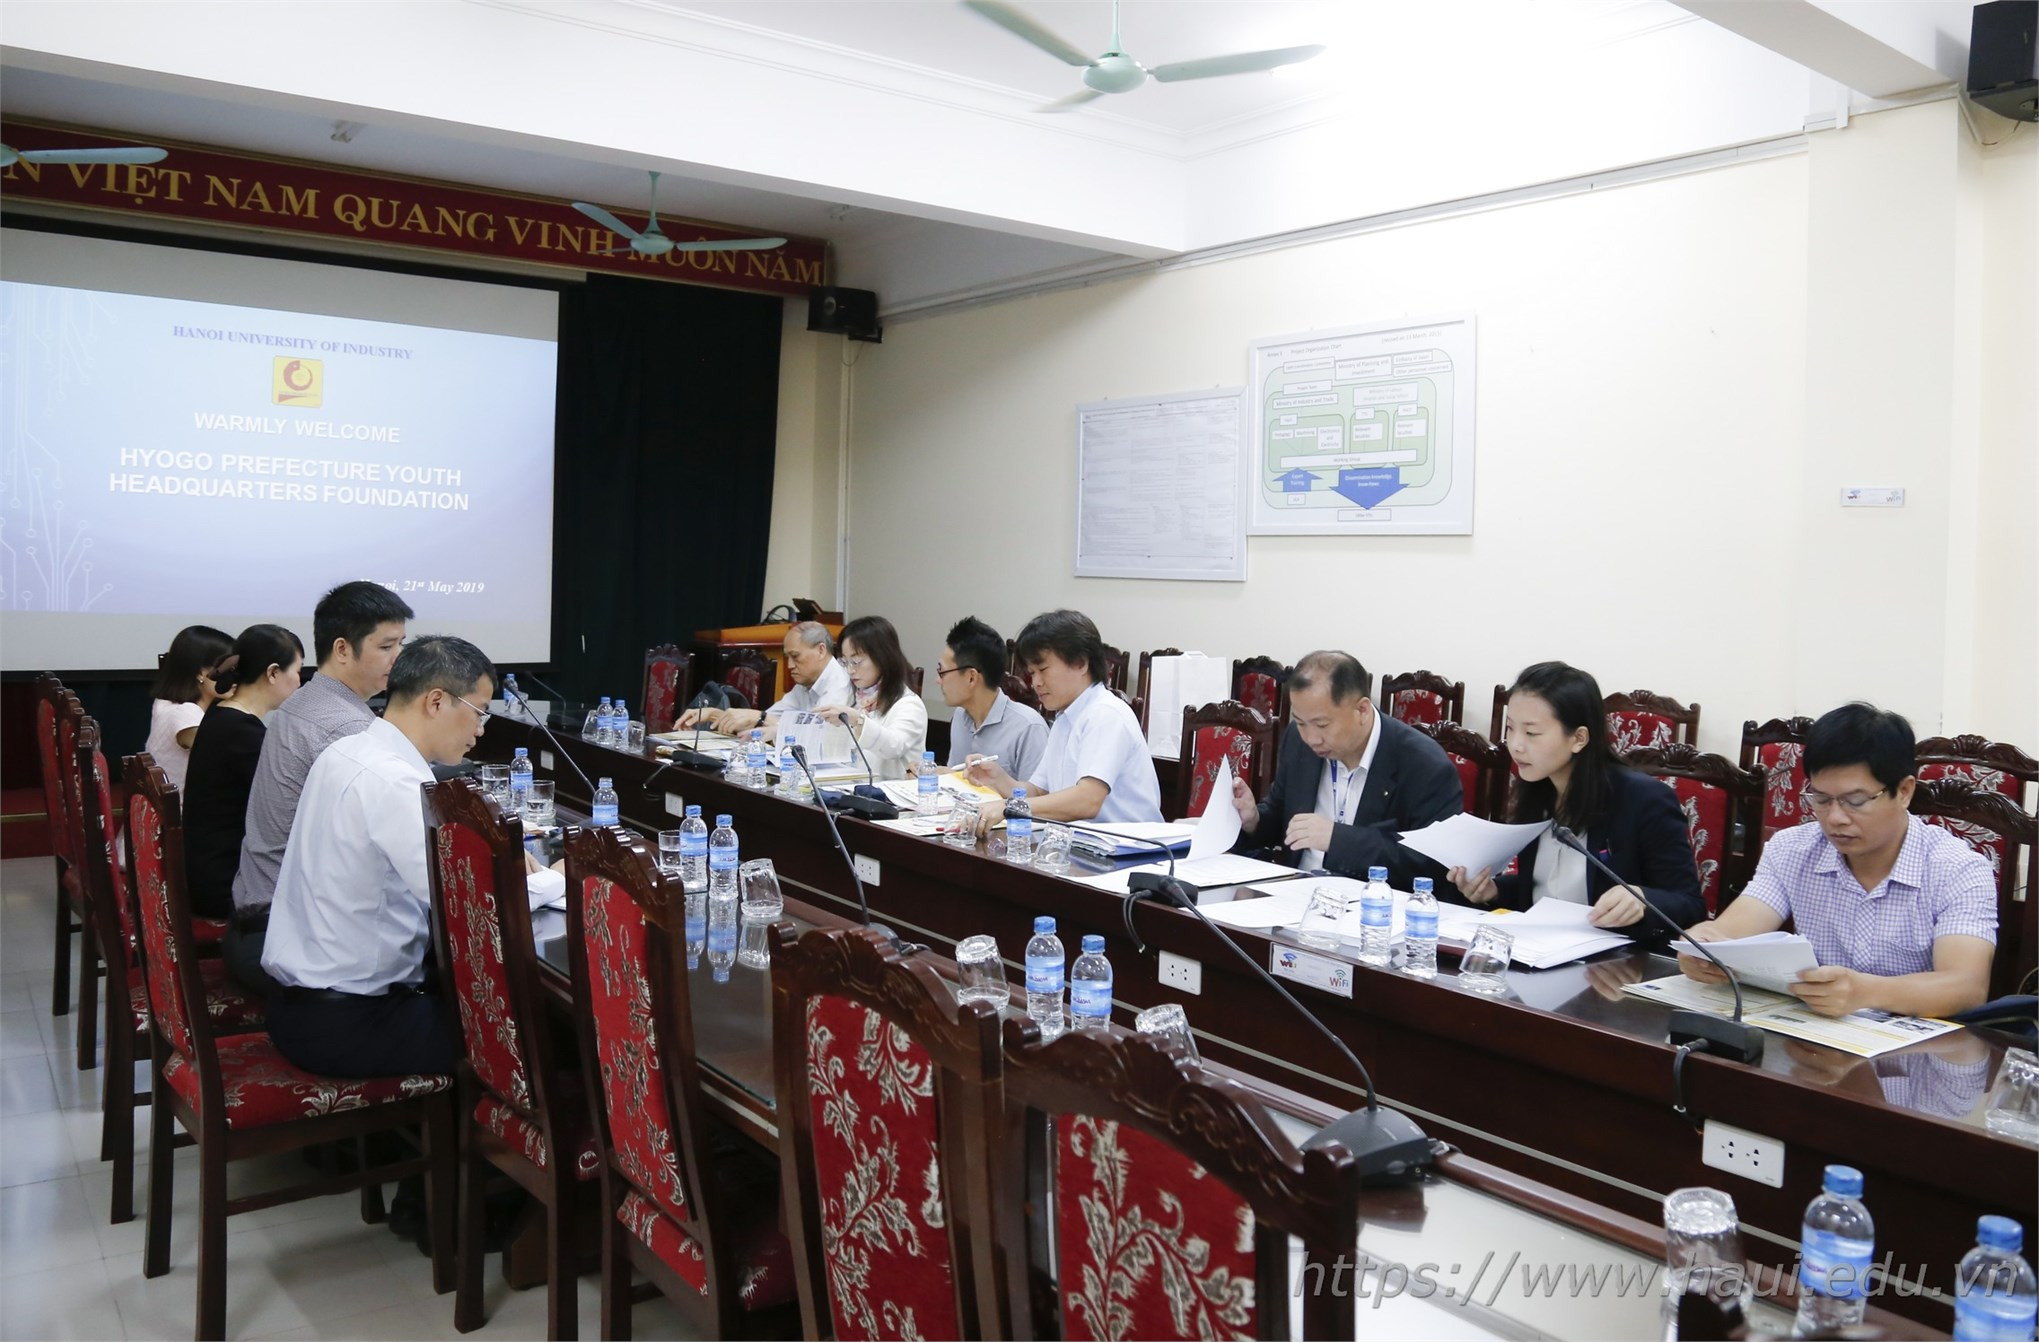 Delegation of Hyogo prefecture, Japan paid a working visit to Hanoi University of Industry